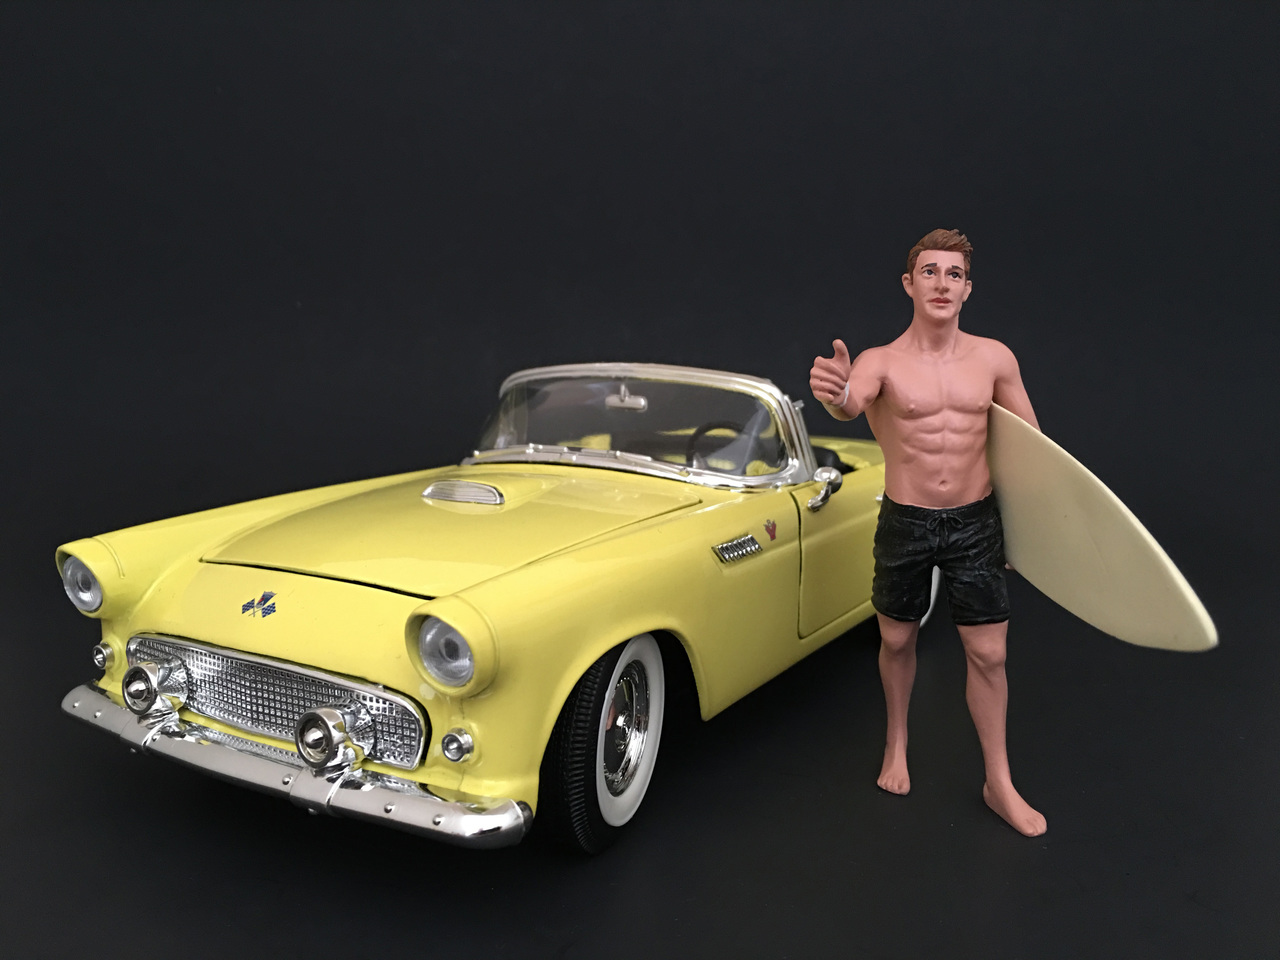 Surfer Jay Figurine for 1/24 Scale Models by American Diorama